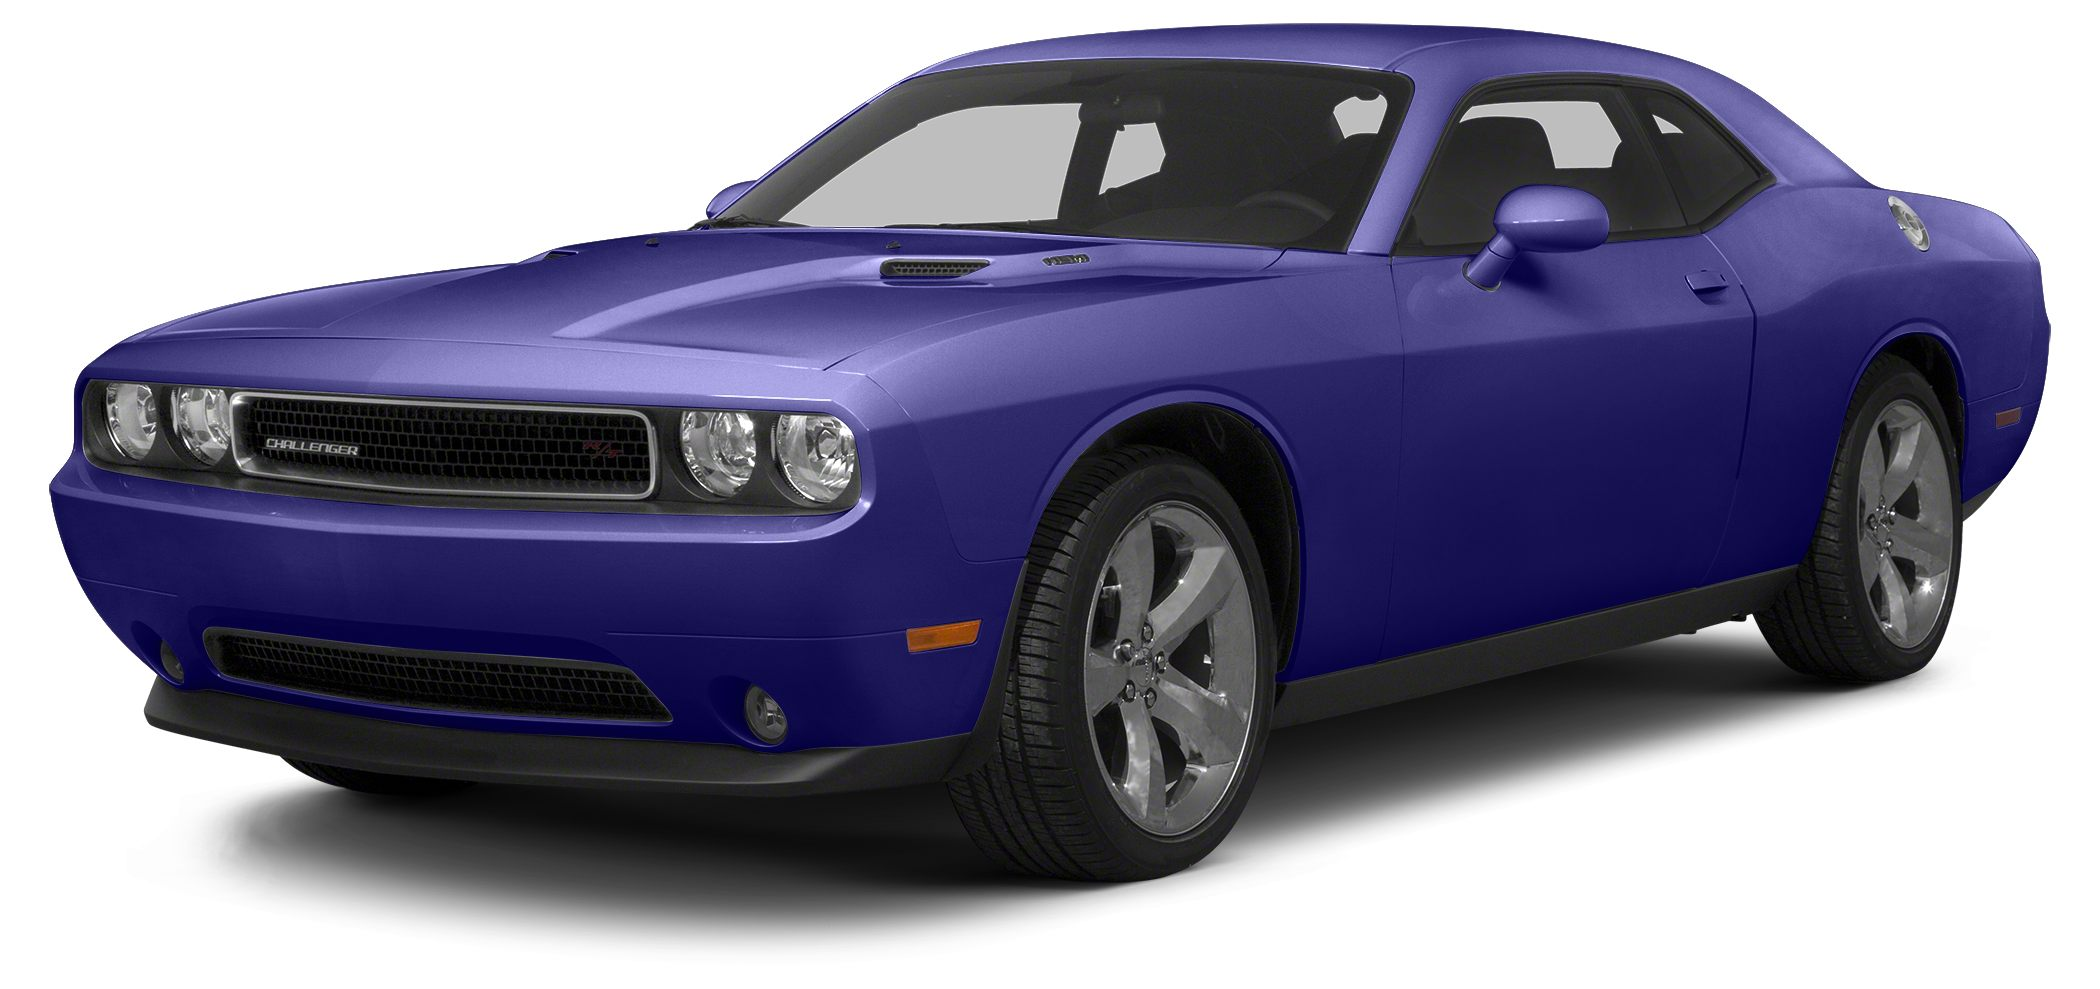 2013 Dodge Challenger RT Land a steal on this 2013 Dodge Challenger RT Plus before its too late